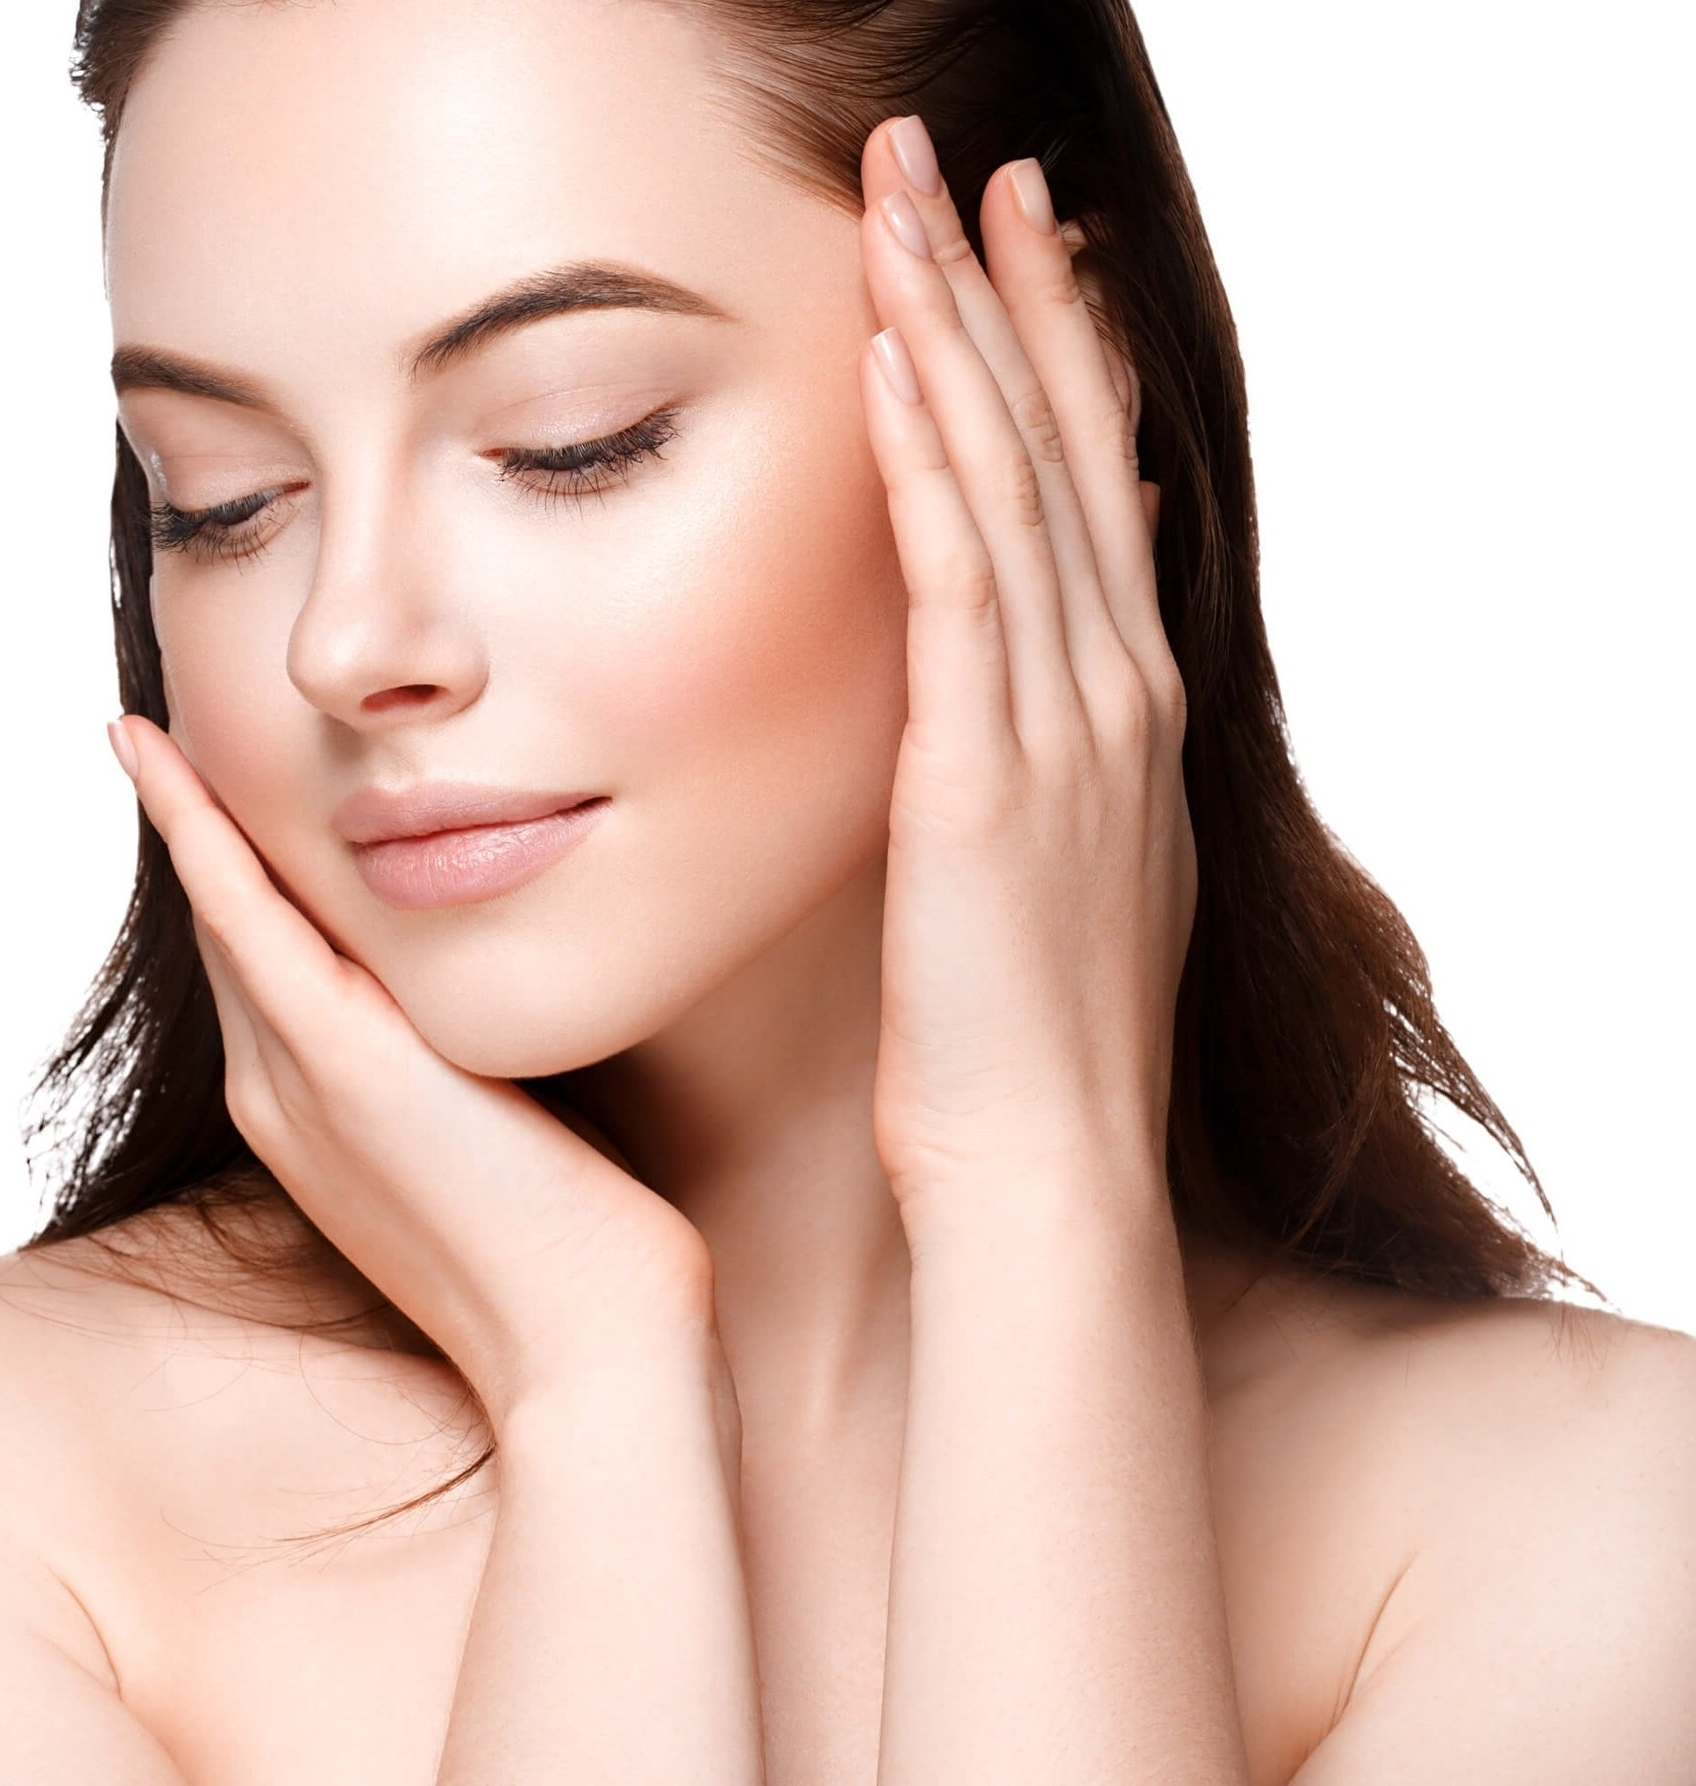 Dermal Fillers - Add volume or enhance and define LipsEliminate sagging Lip CornersDefine the Jaw LineFull Face LiftSmooth Nasolabial LinesSmooth Marionette LinesAdd volume to Hollowing TemplesSmooth and reduce Laugh LinesLift, contour and define cheeks with Cheek AugmentationReduce the appearance and volume to Acne Scars